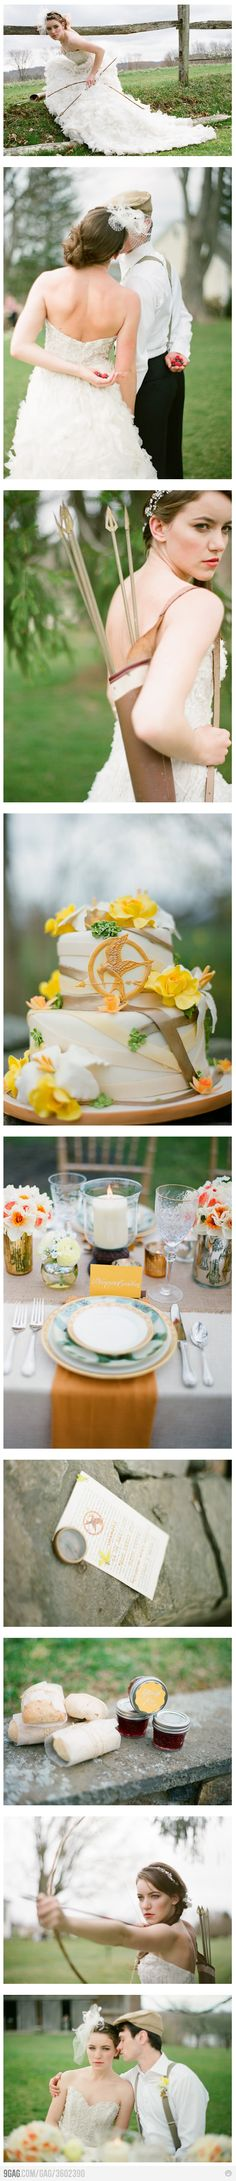 Hunger Games Wedding; this is just to much